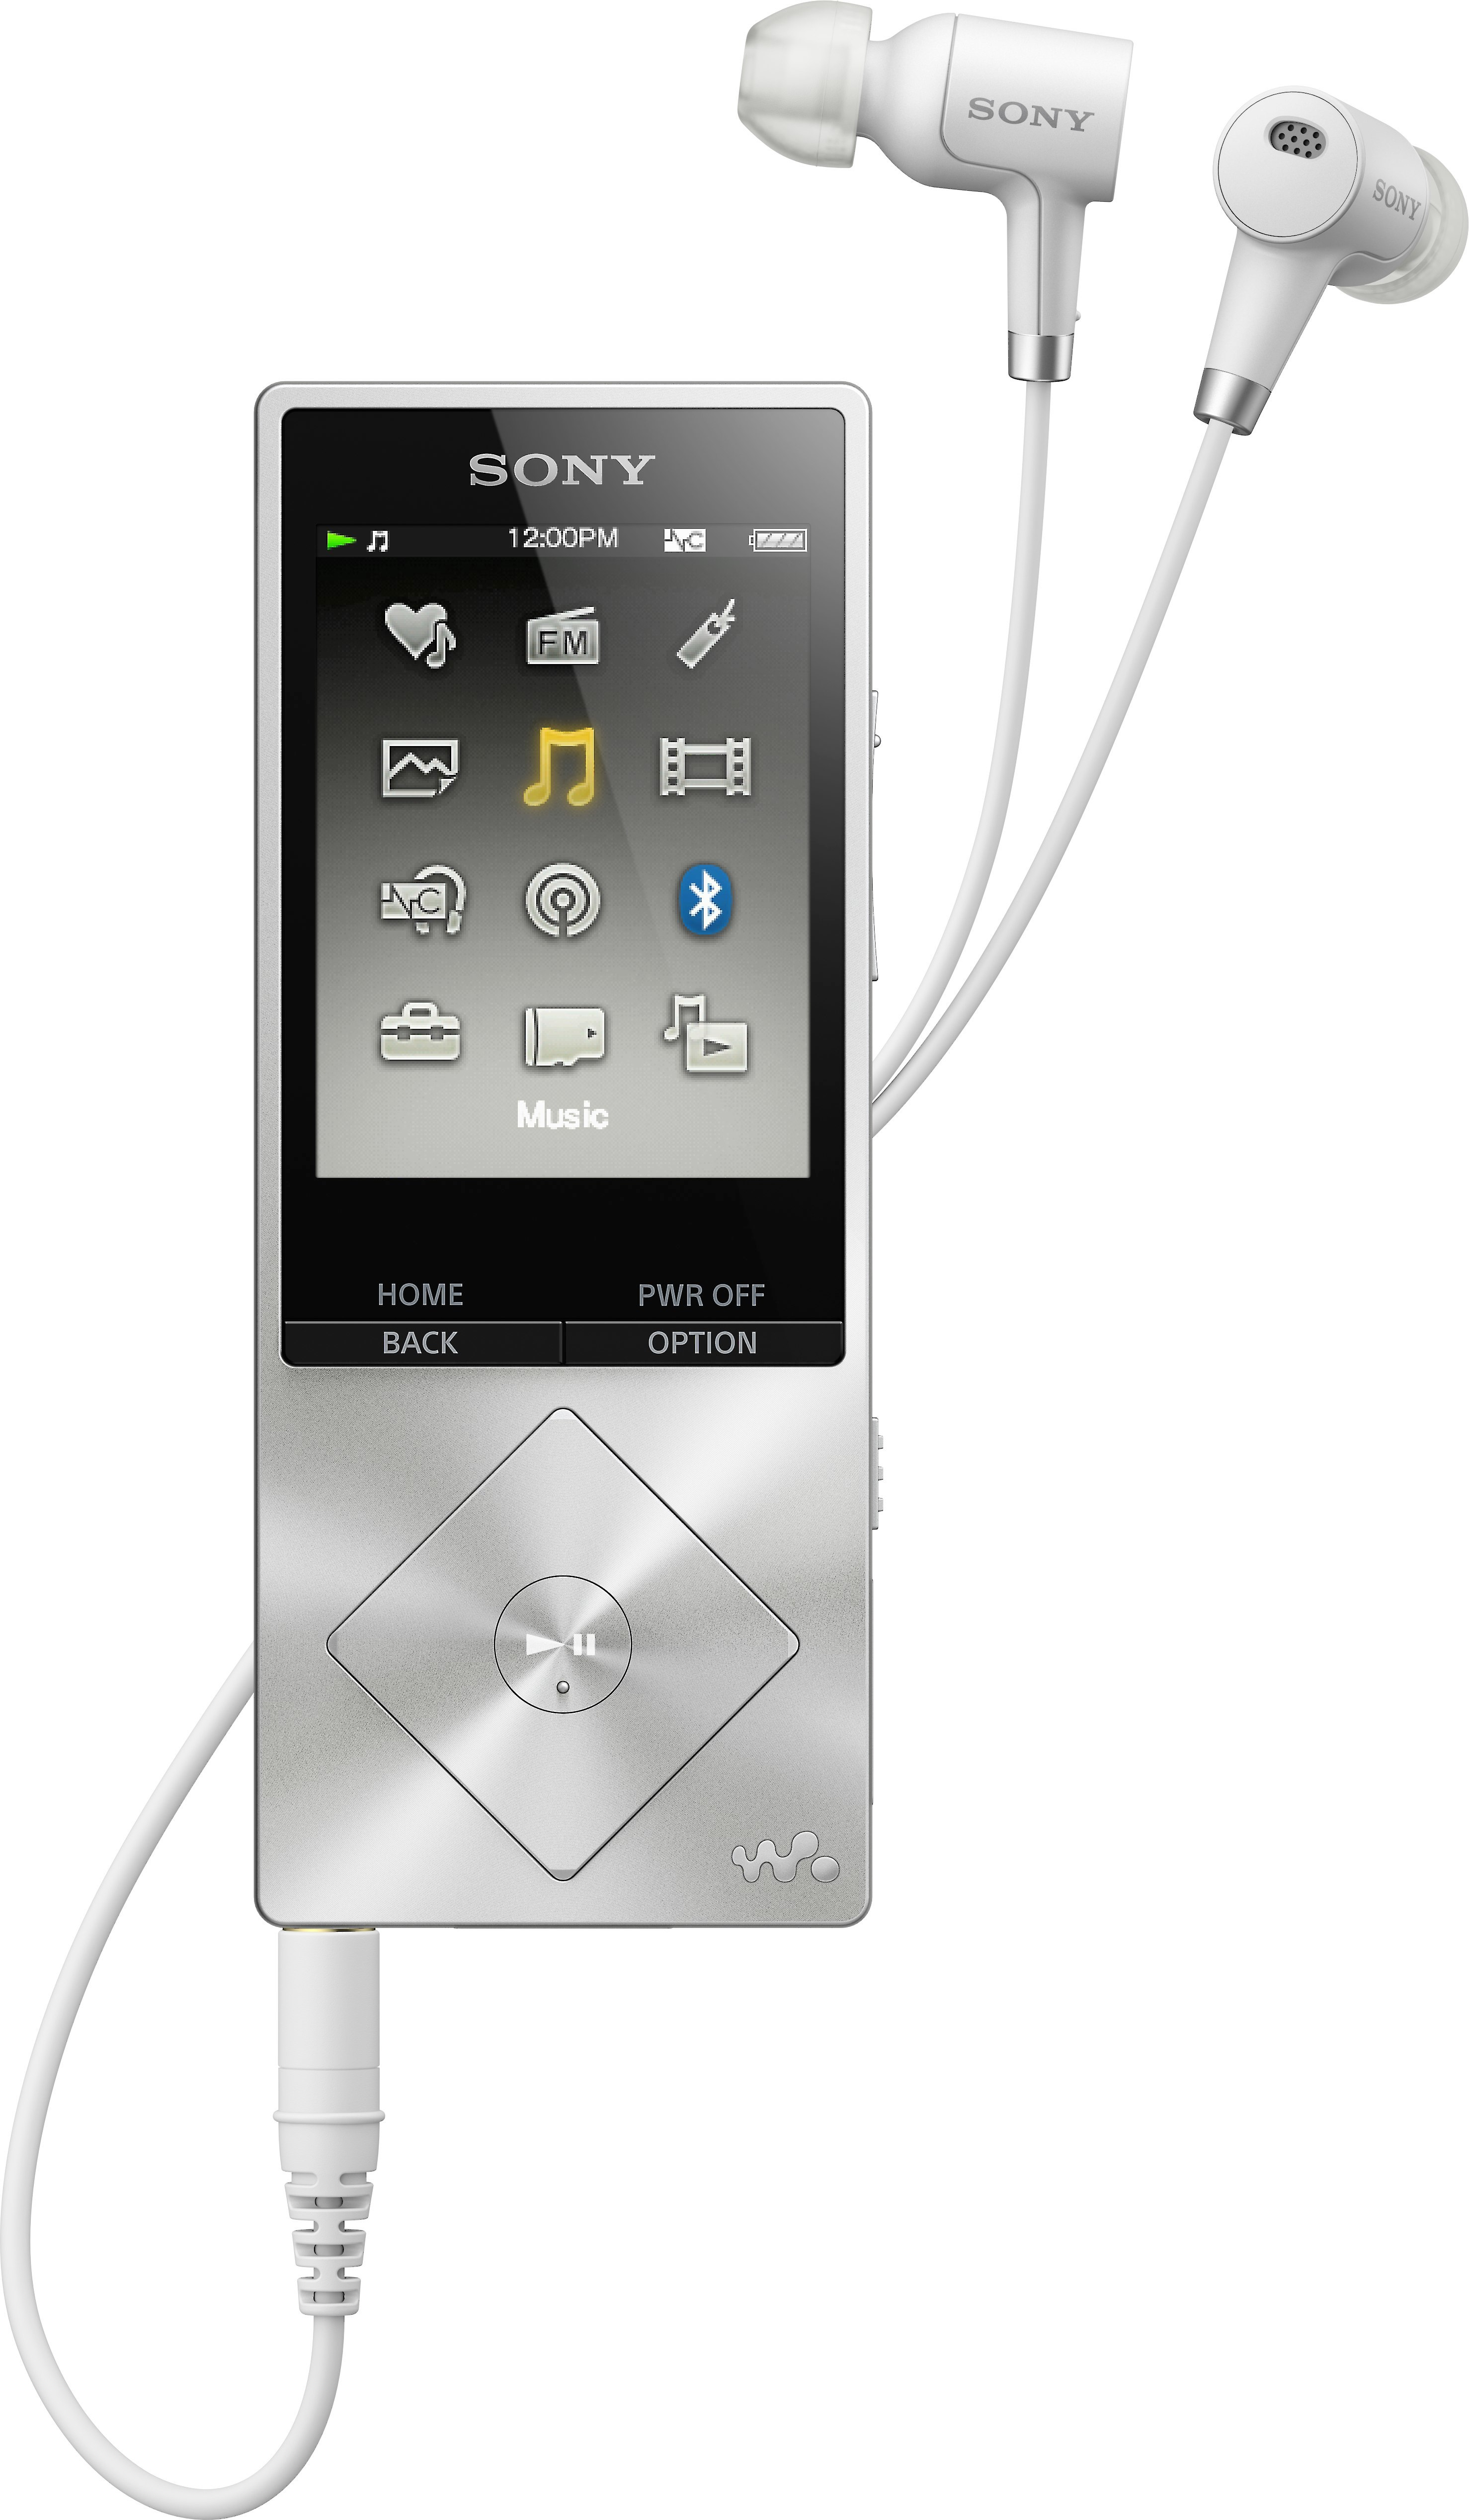 SONY NW-A27HN AUDIO PLAYER DRIVERS WINDOWS 7